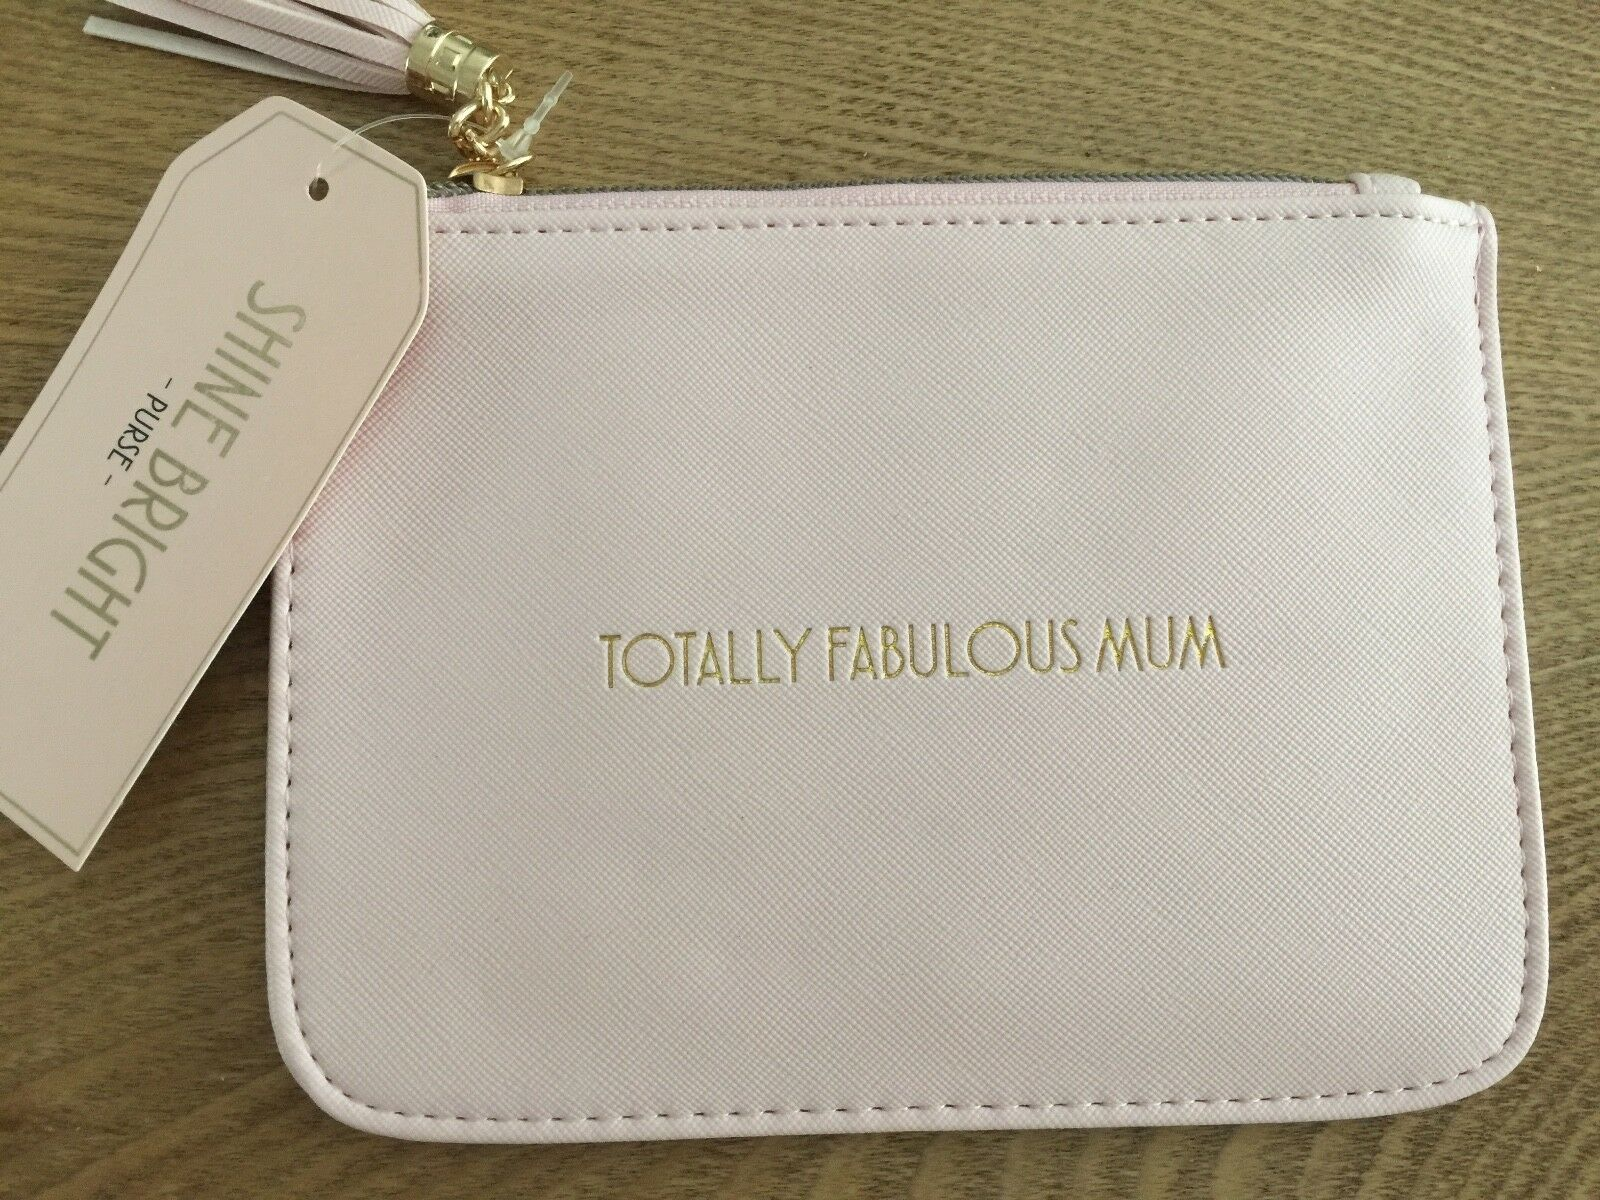 Shine Bright' Totally Fabulous Mum Pink Coin Purse